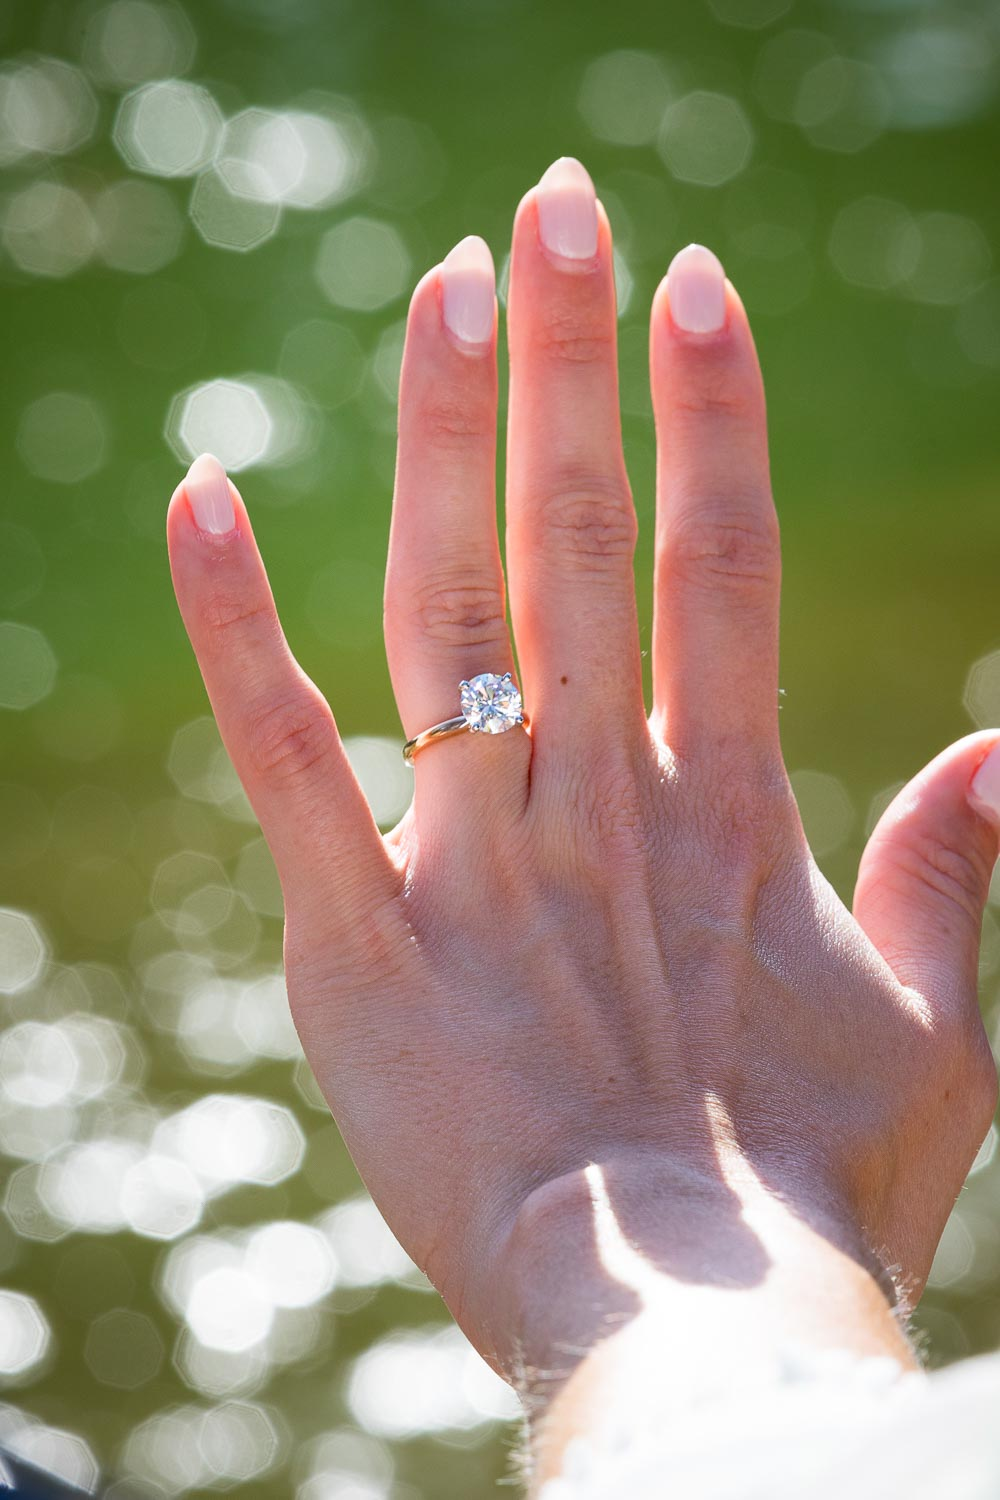 Close up the engagement ring wore on the hand